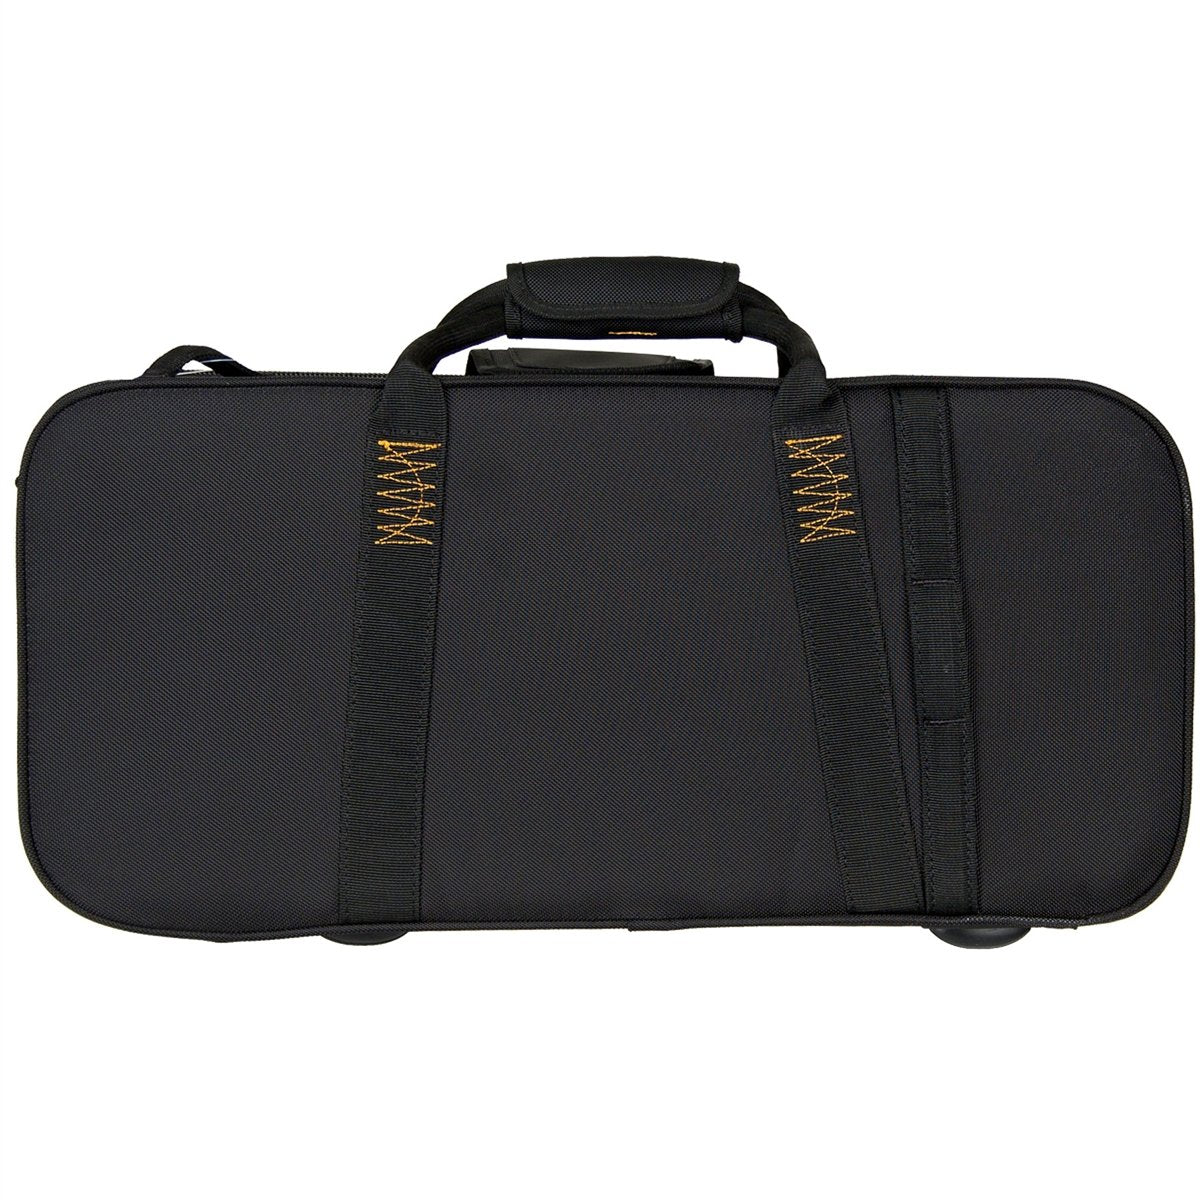 Protec - Trumpet PRO PAC Case (Rectangular)-Case-Protec-Music Elements